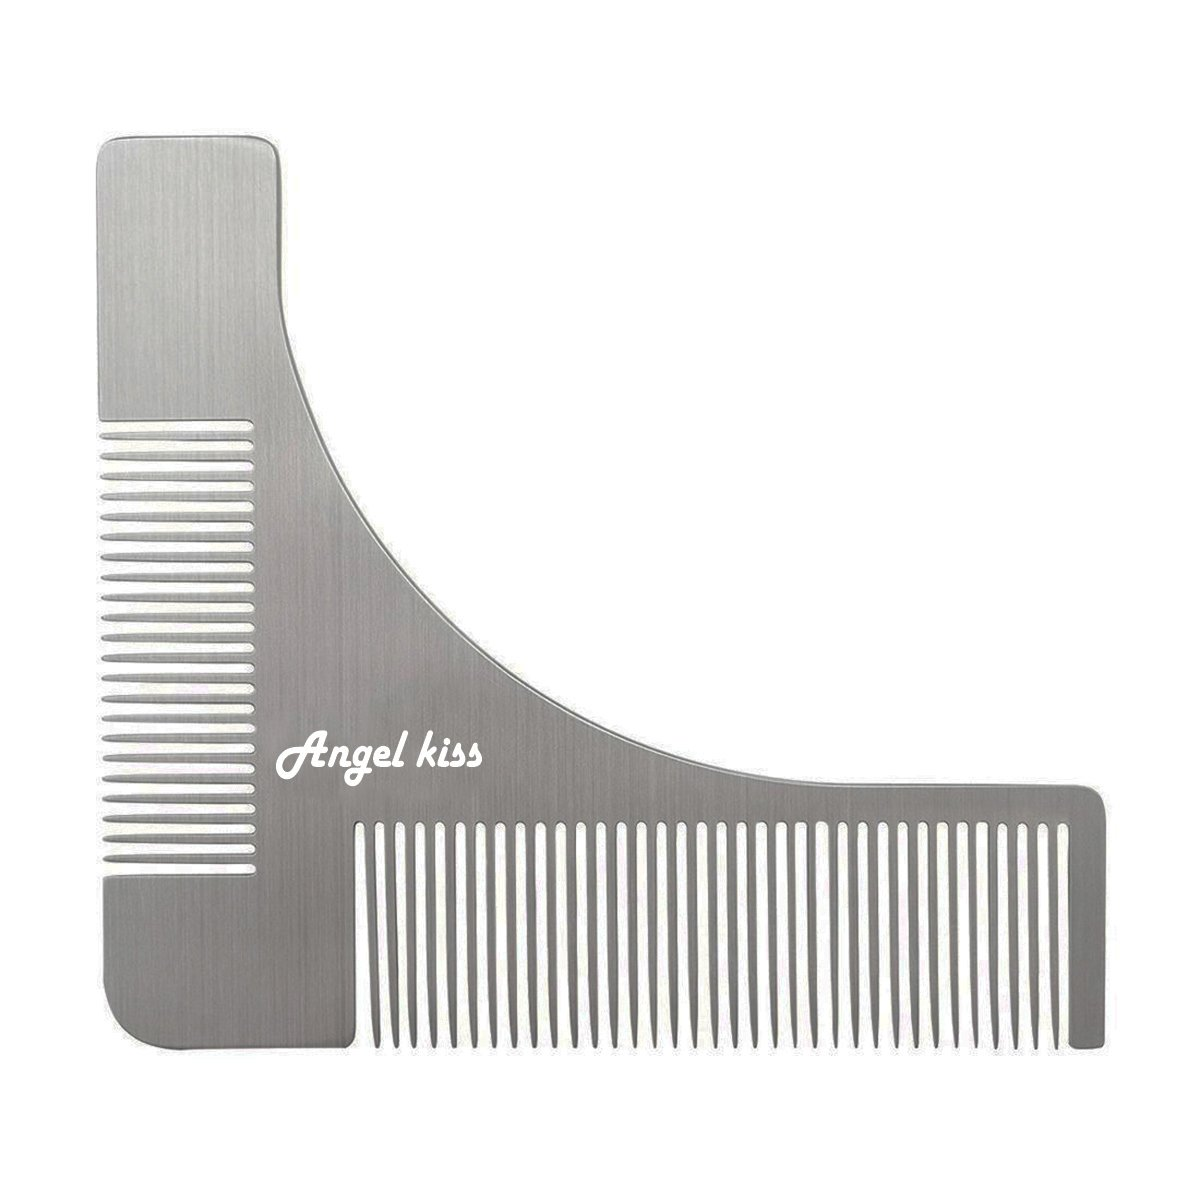 Beard Shaper Template Tool for Facial Hair Shaping - Angel Kiss Stainless Steel Beard Styling Comb for Perfect Lines Symmetric Mustache Grooming Style